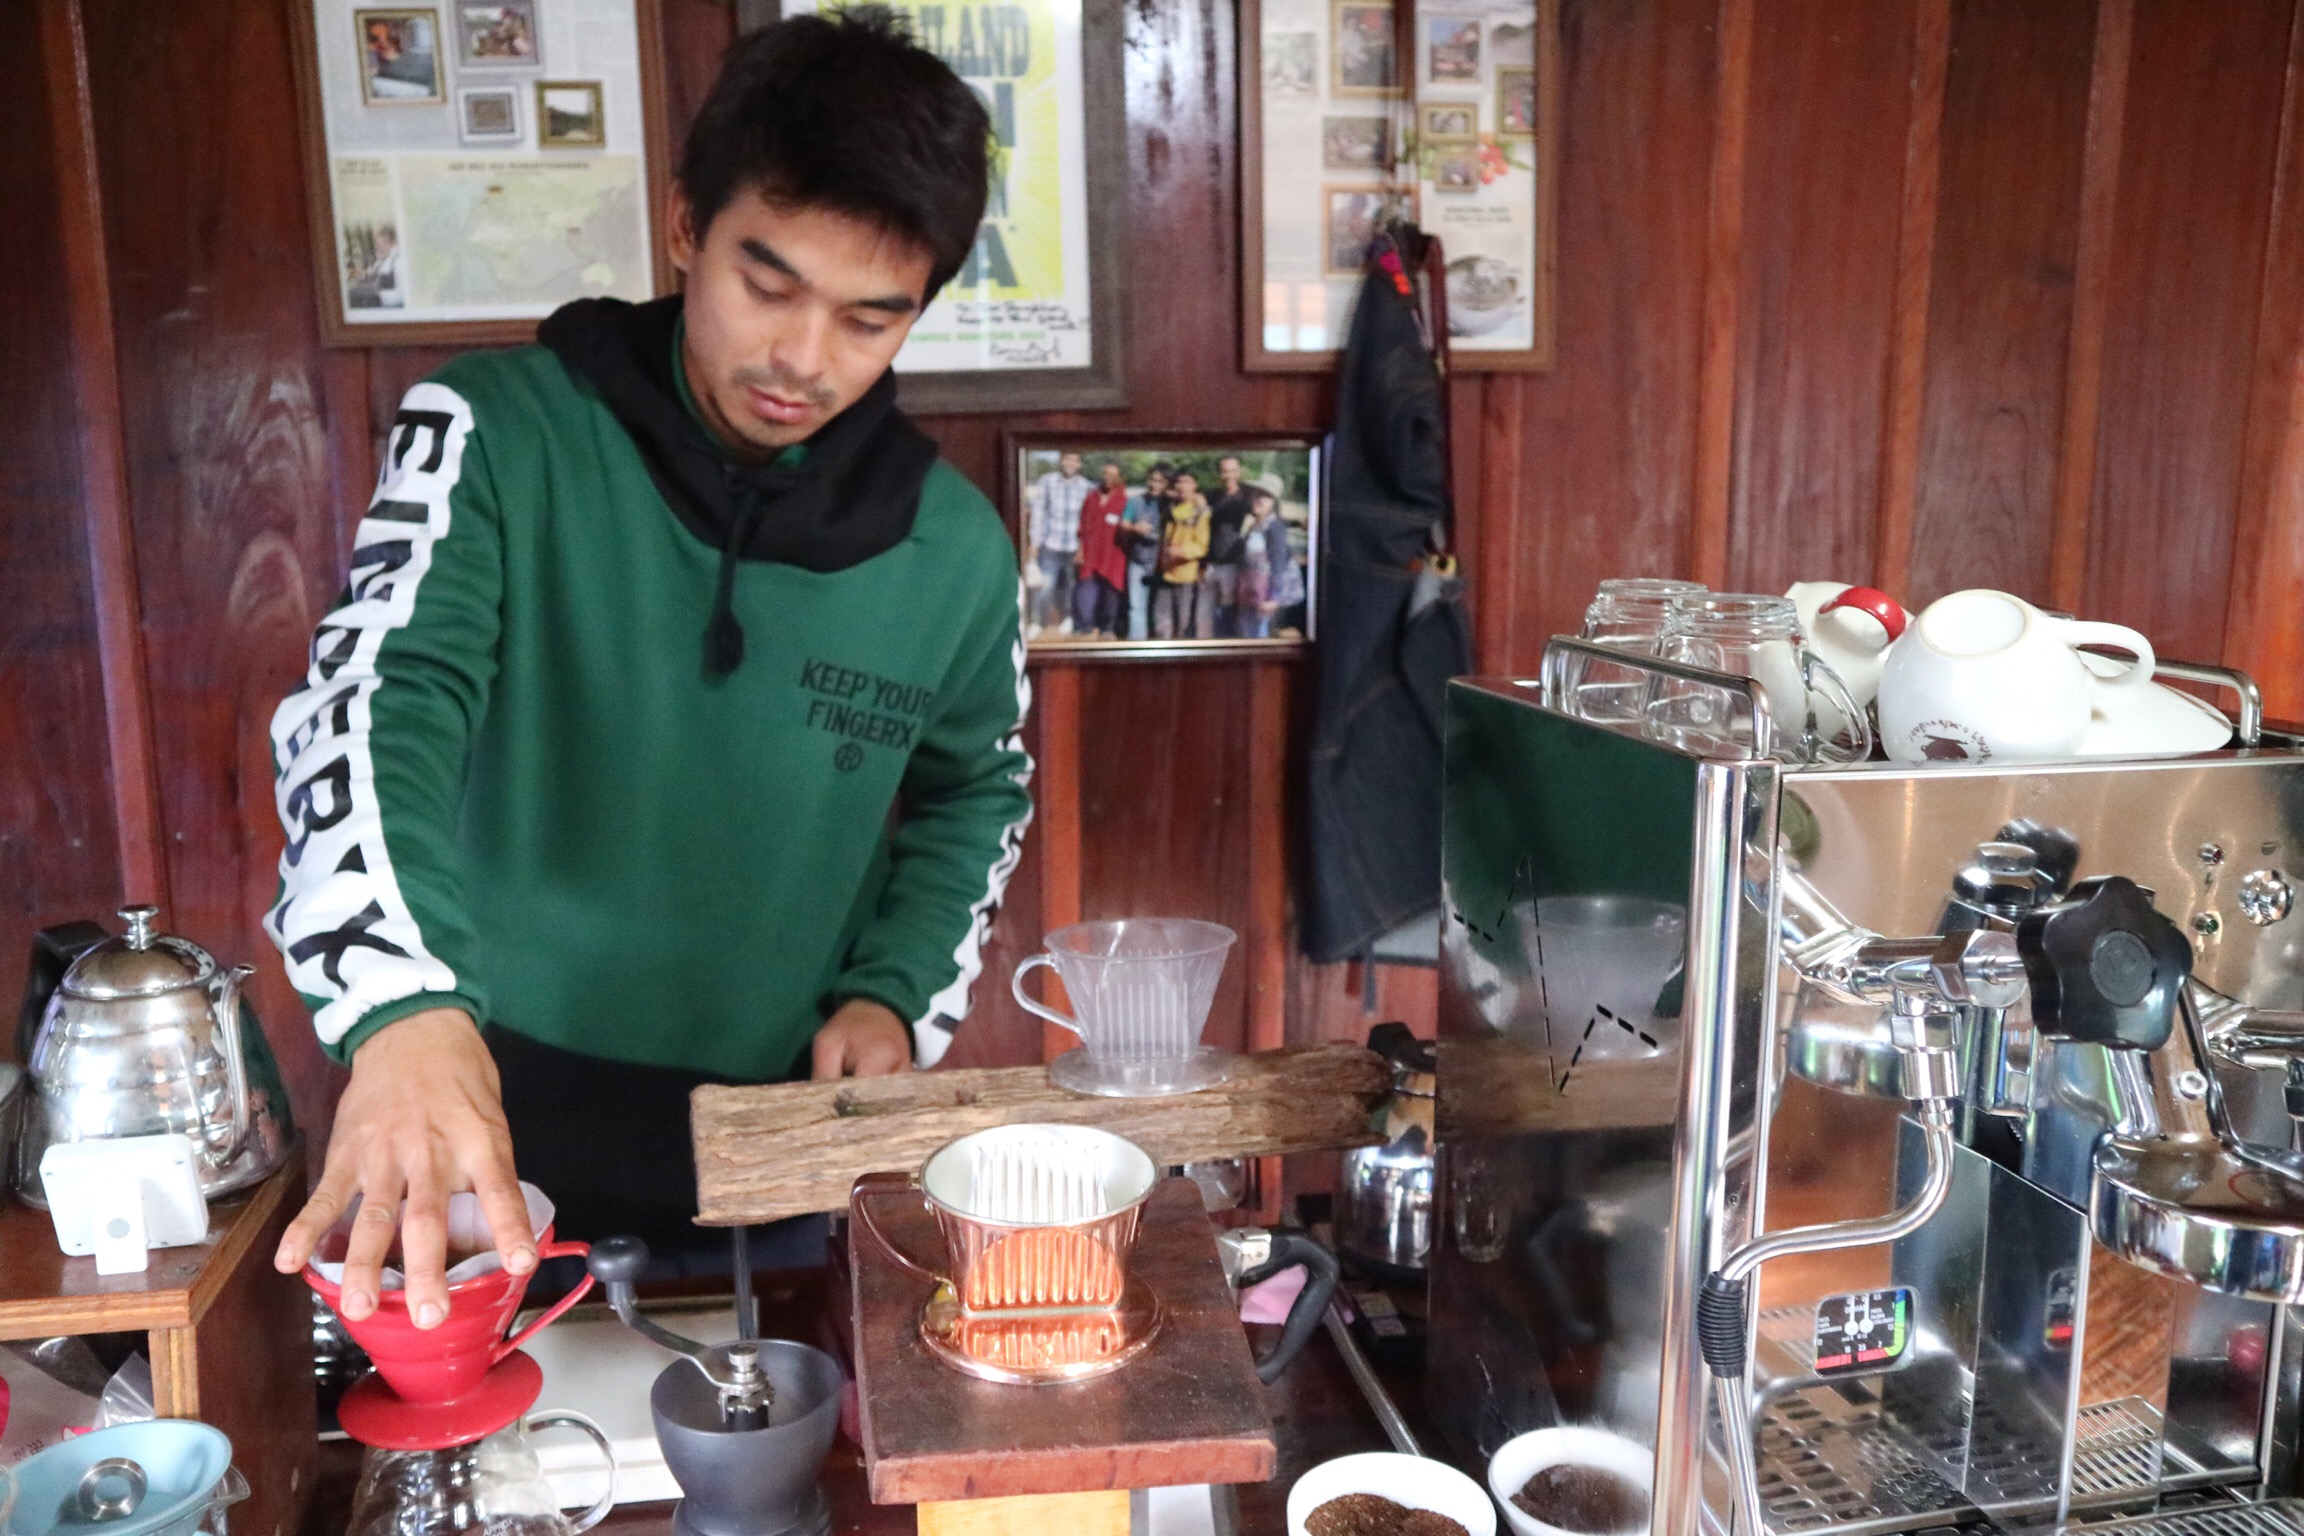 Ata, a Pangkhon area grower and innovator, in his personal cafe. He hosts visitors for homestay and farm tours, complete with unmatched warmth and hospitality.